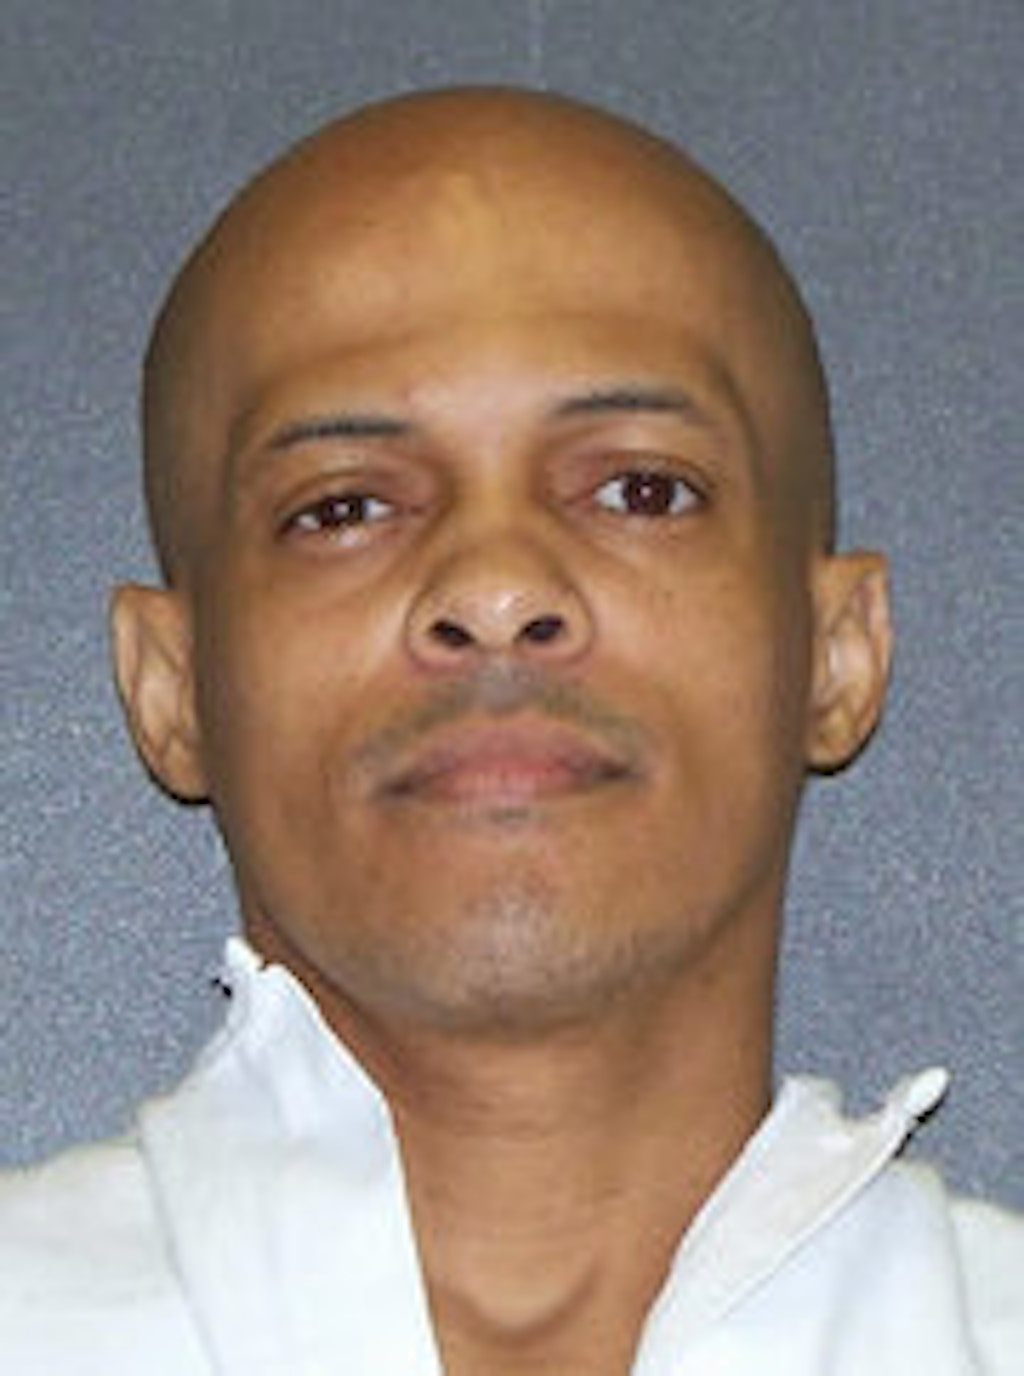 Texas Execution Stayed Over Intellectual Disability Claim